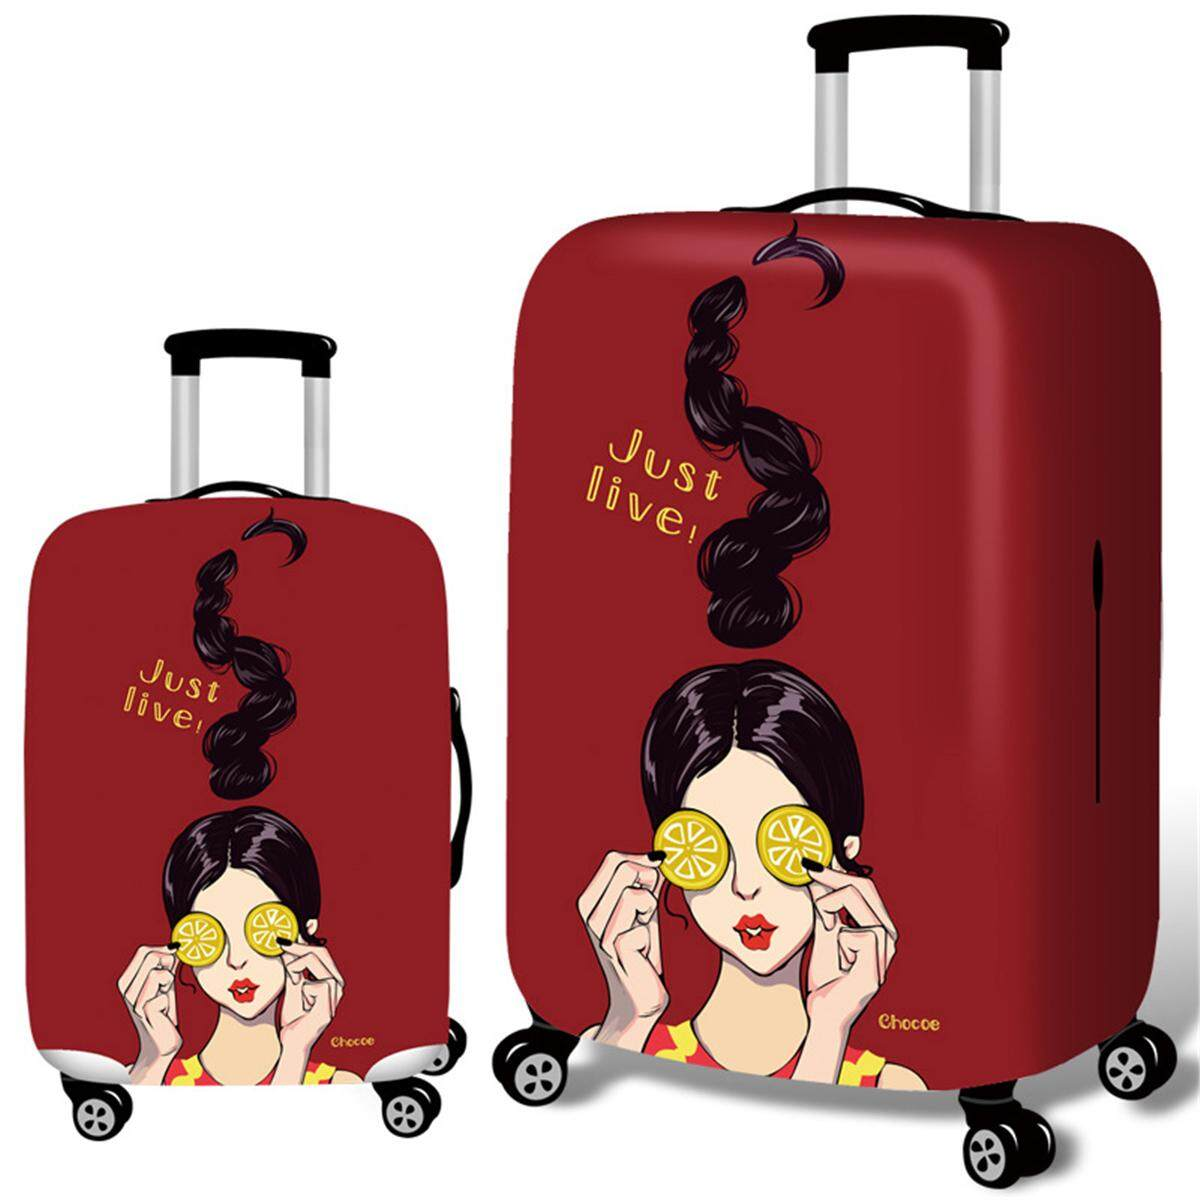 Cool Girl Travel Luggage Cover Protector Elastic Suitcase Bag  Scratch-resistant   M 438777f163